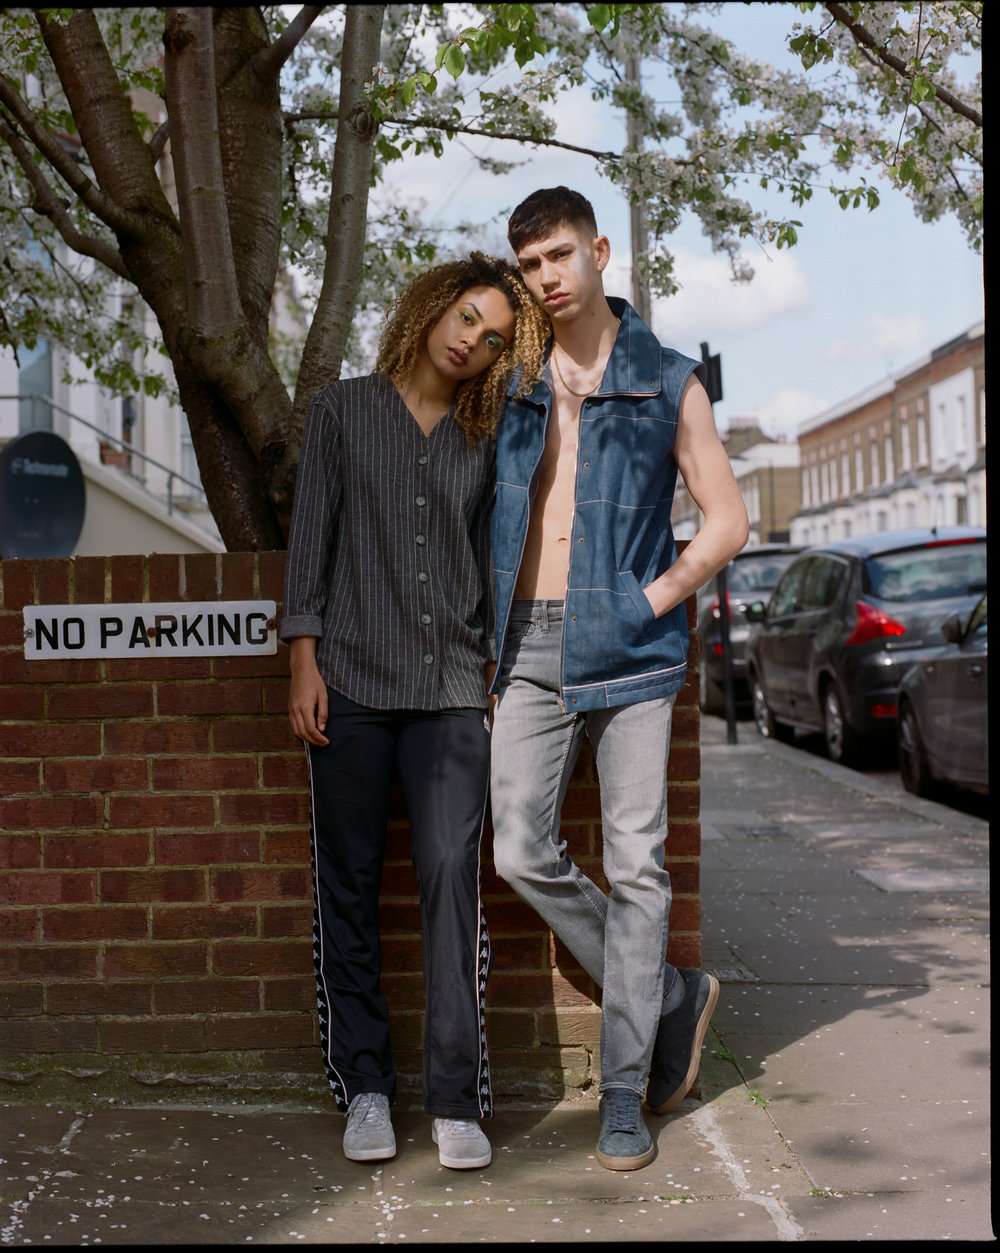 We Are Not The Same  Published on 24 April 2016   Photographer  Rosie Matheson  Stylist  Reuben Selby  MUAH  Jihye Sim  Models  Archie from AMCK and Ocean from NEVS